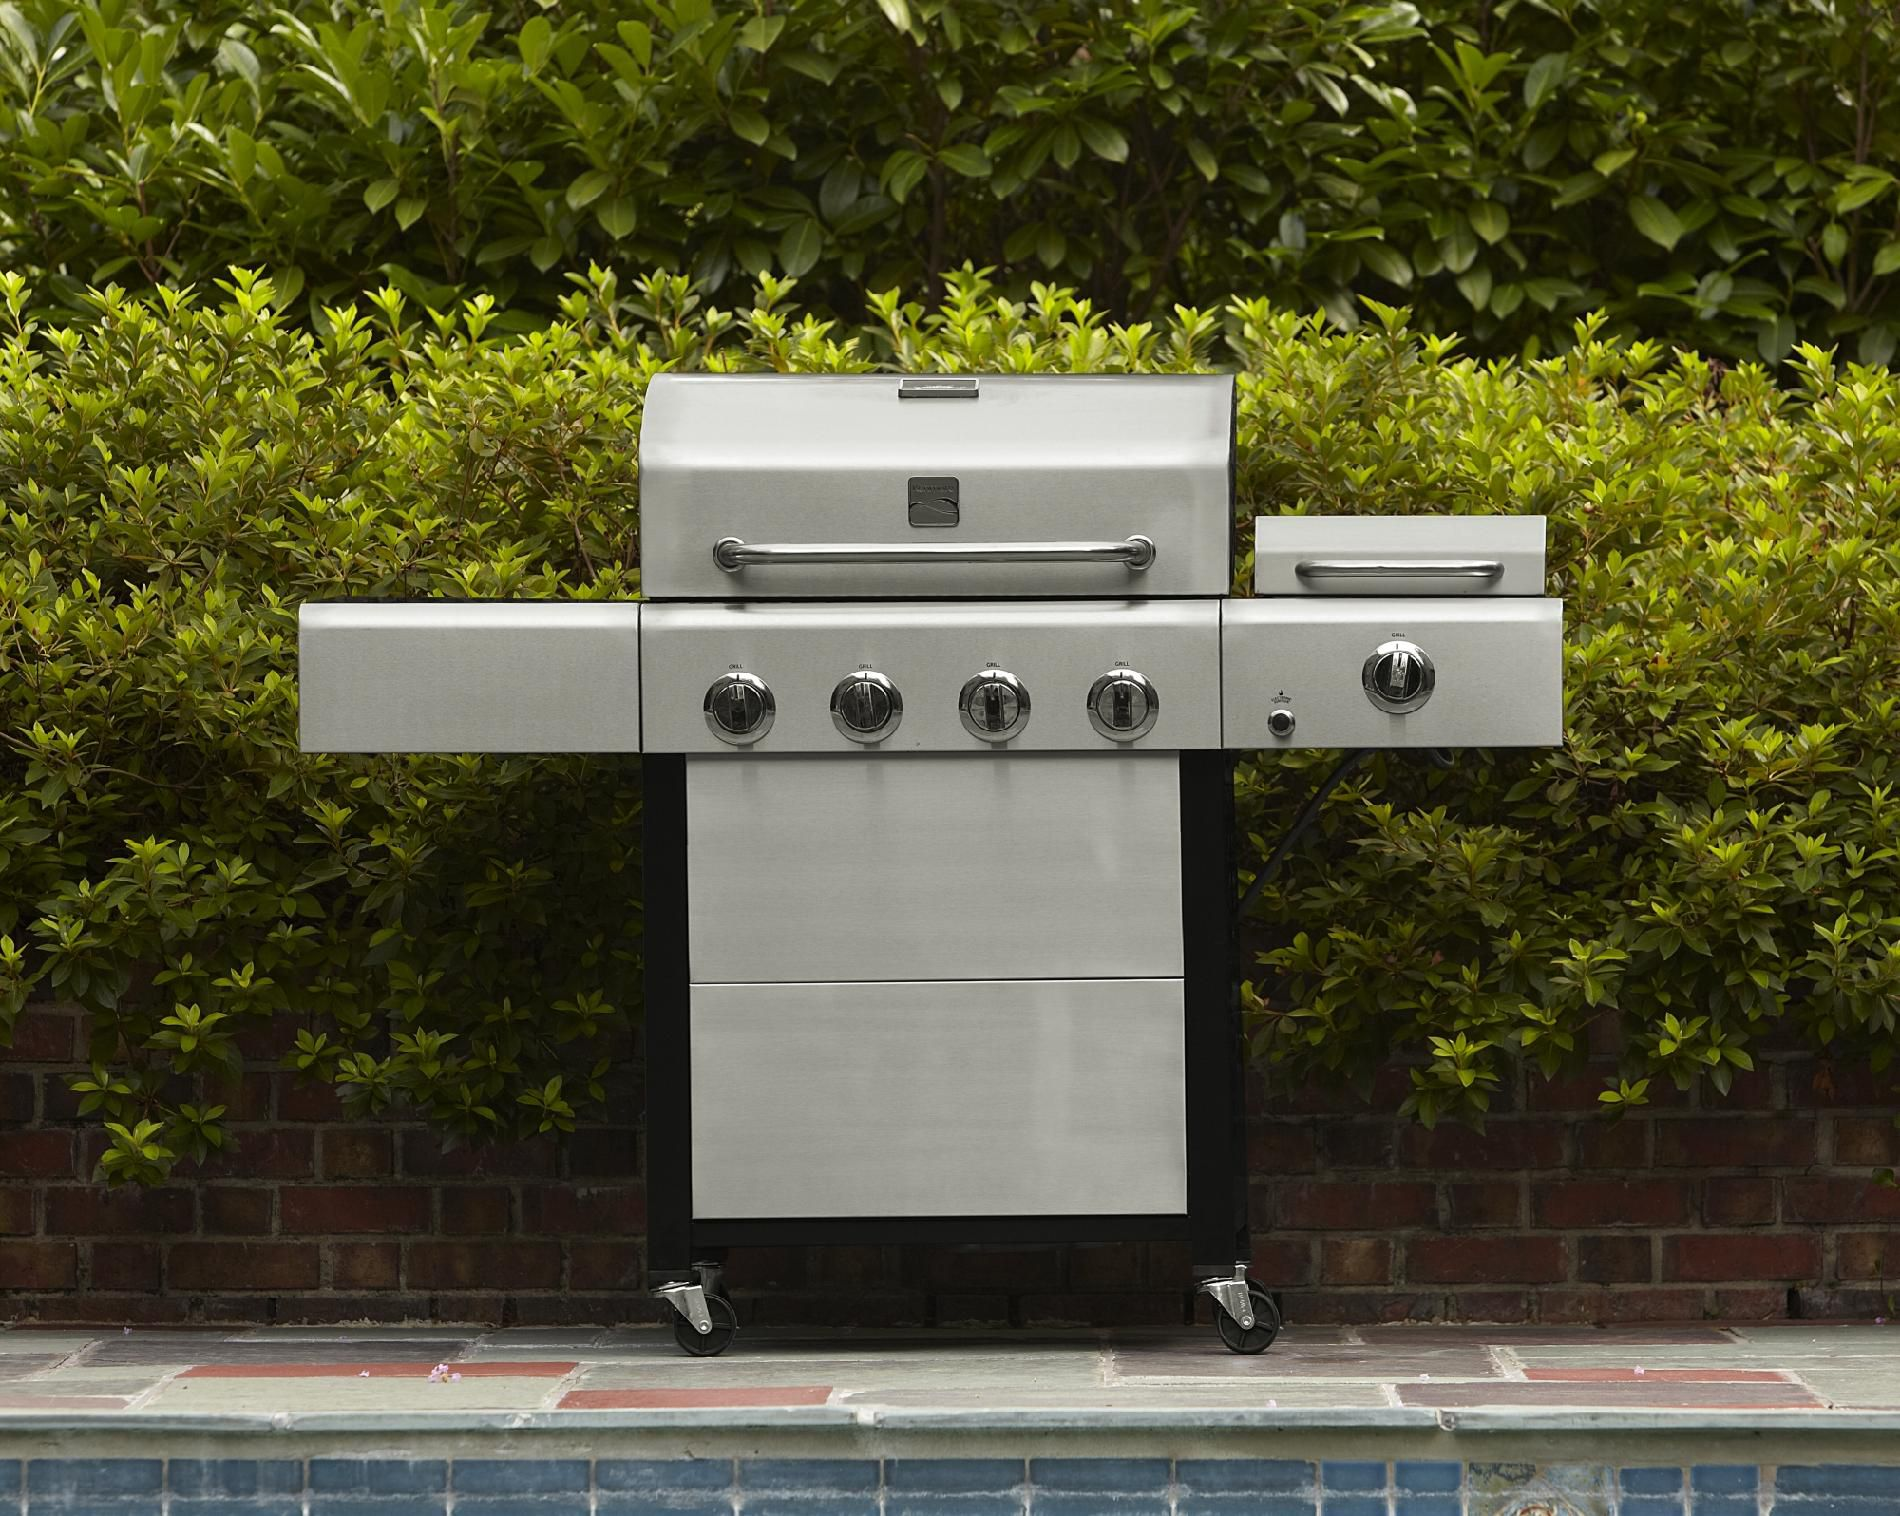 4 Burner Gas Grill with Steamer